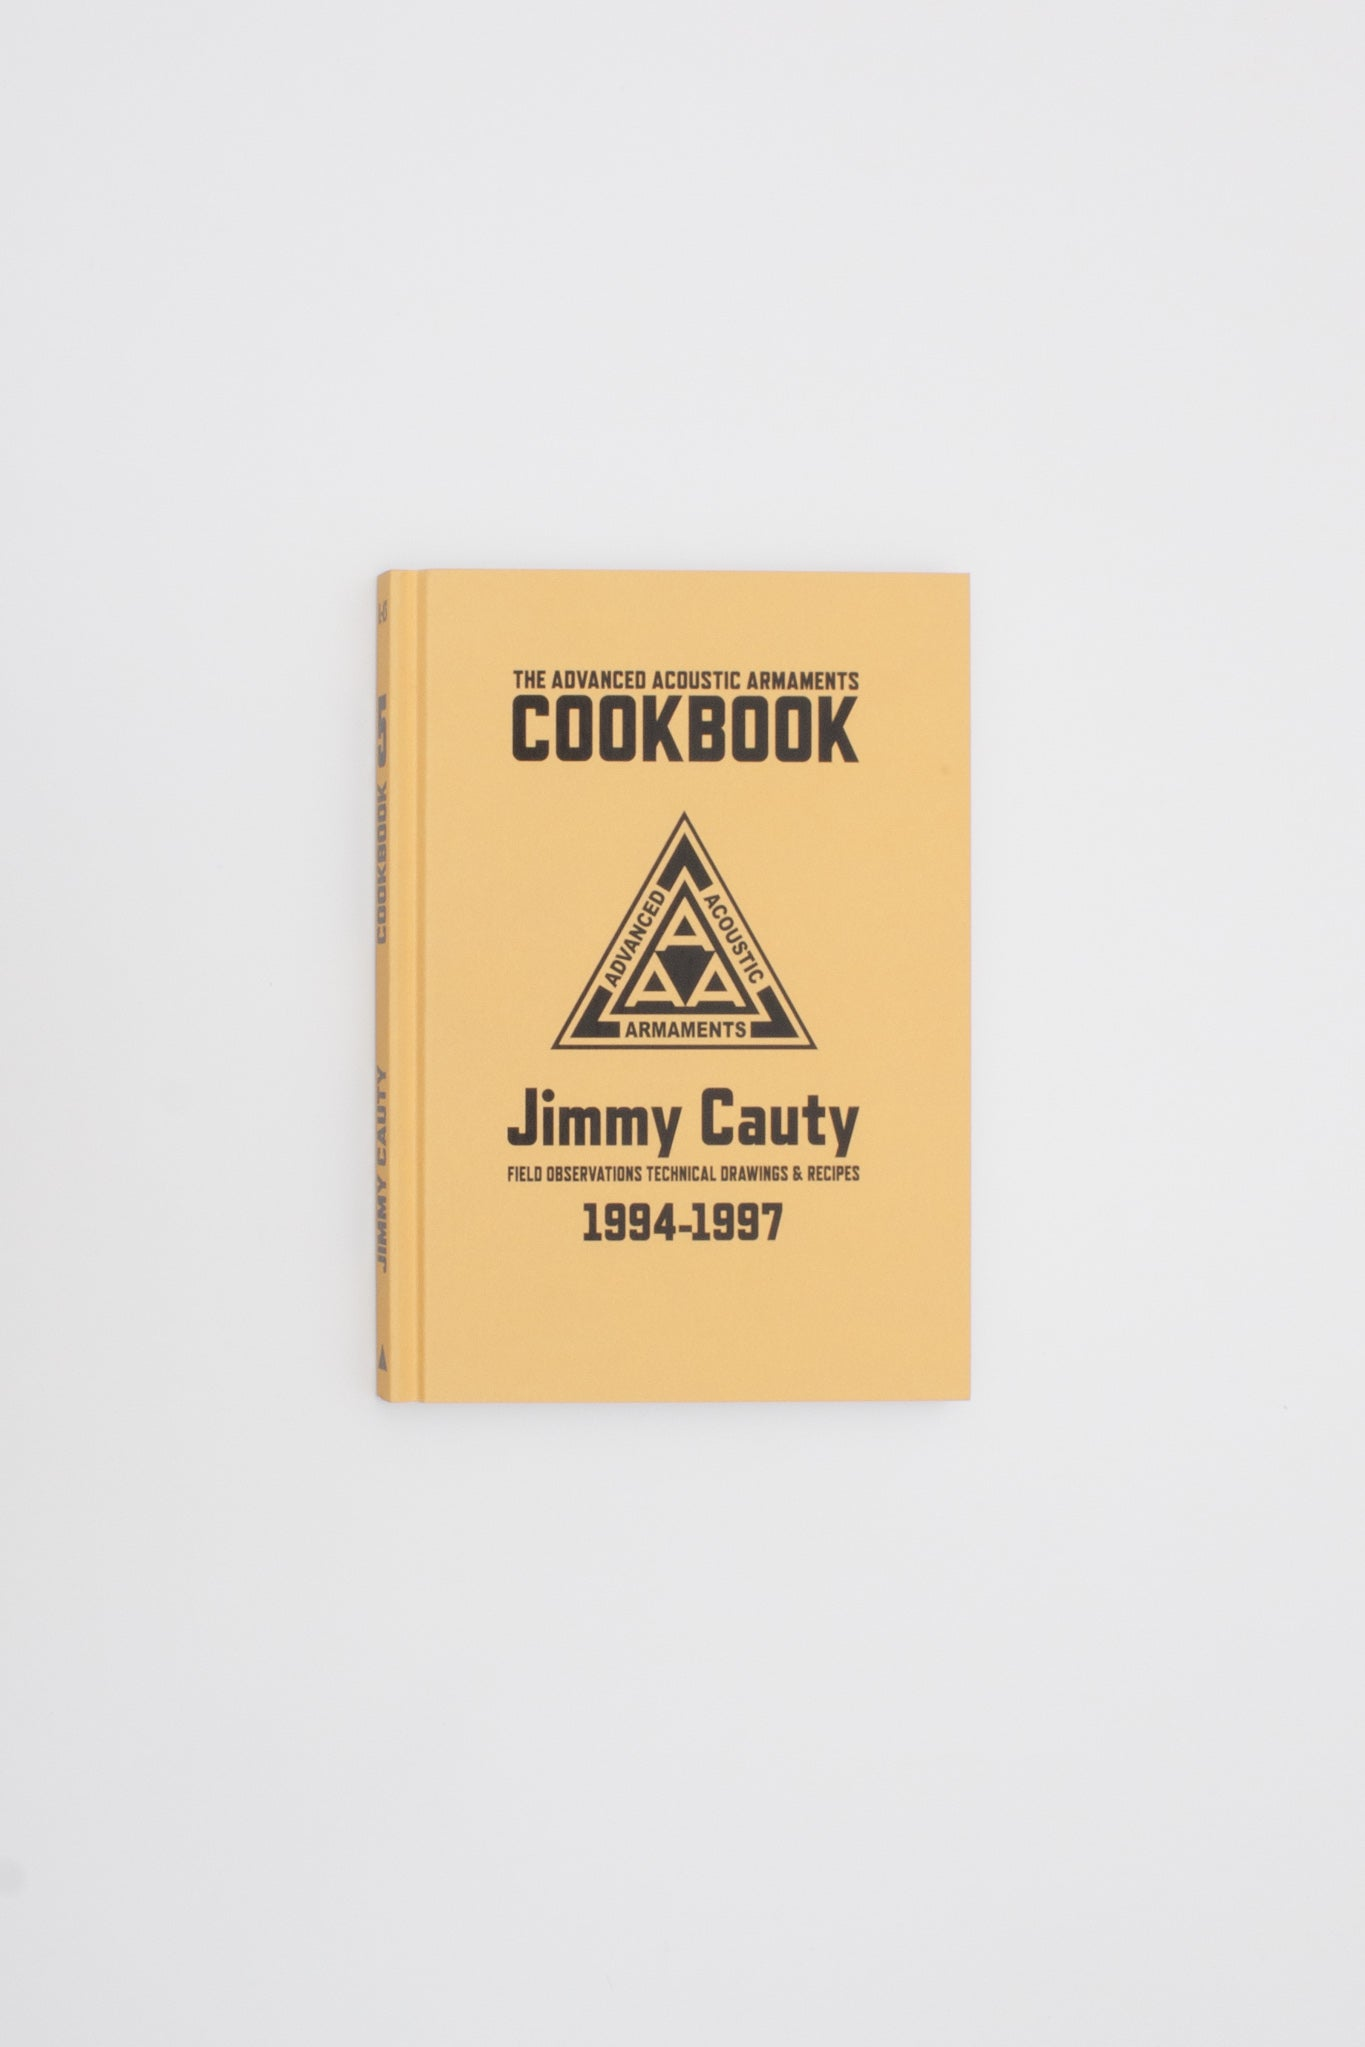 The Advanced Acoustic Armaments Cookbook - Jimmy Cauty